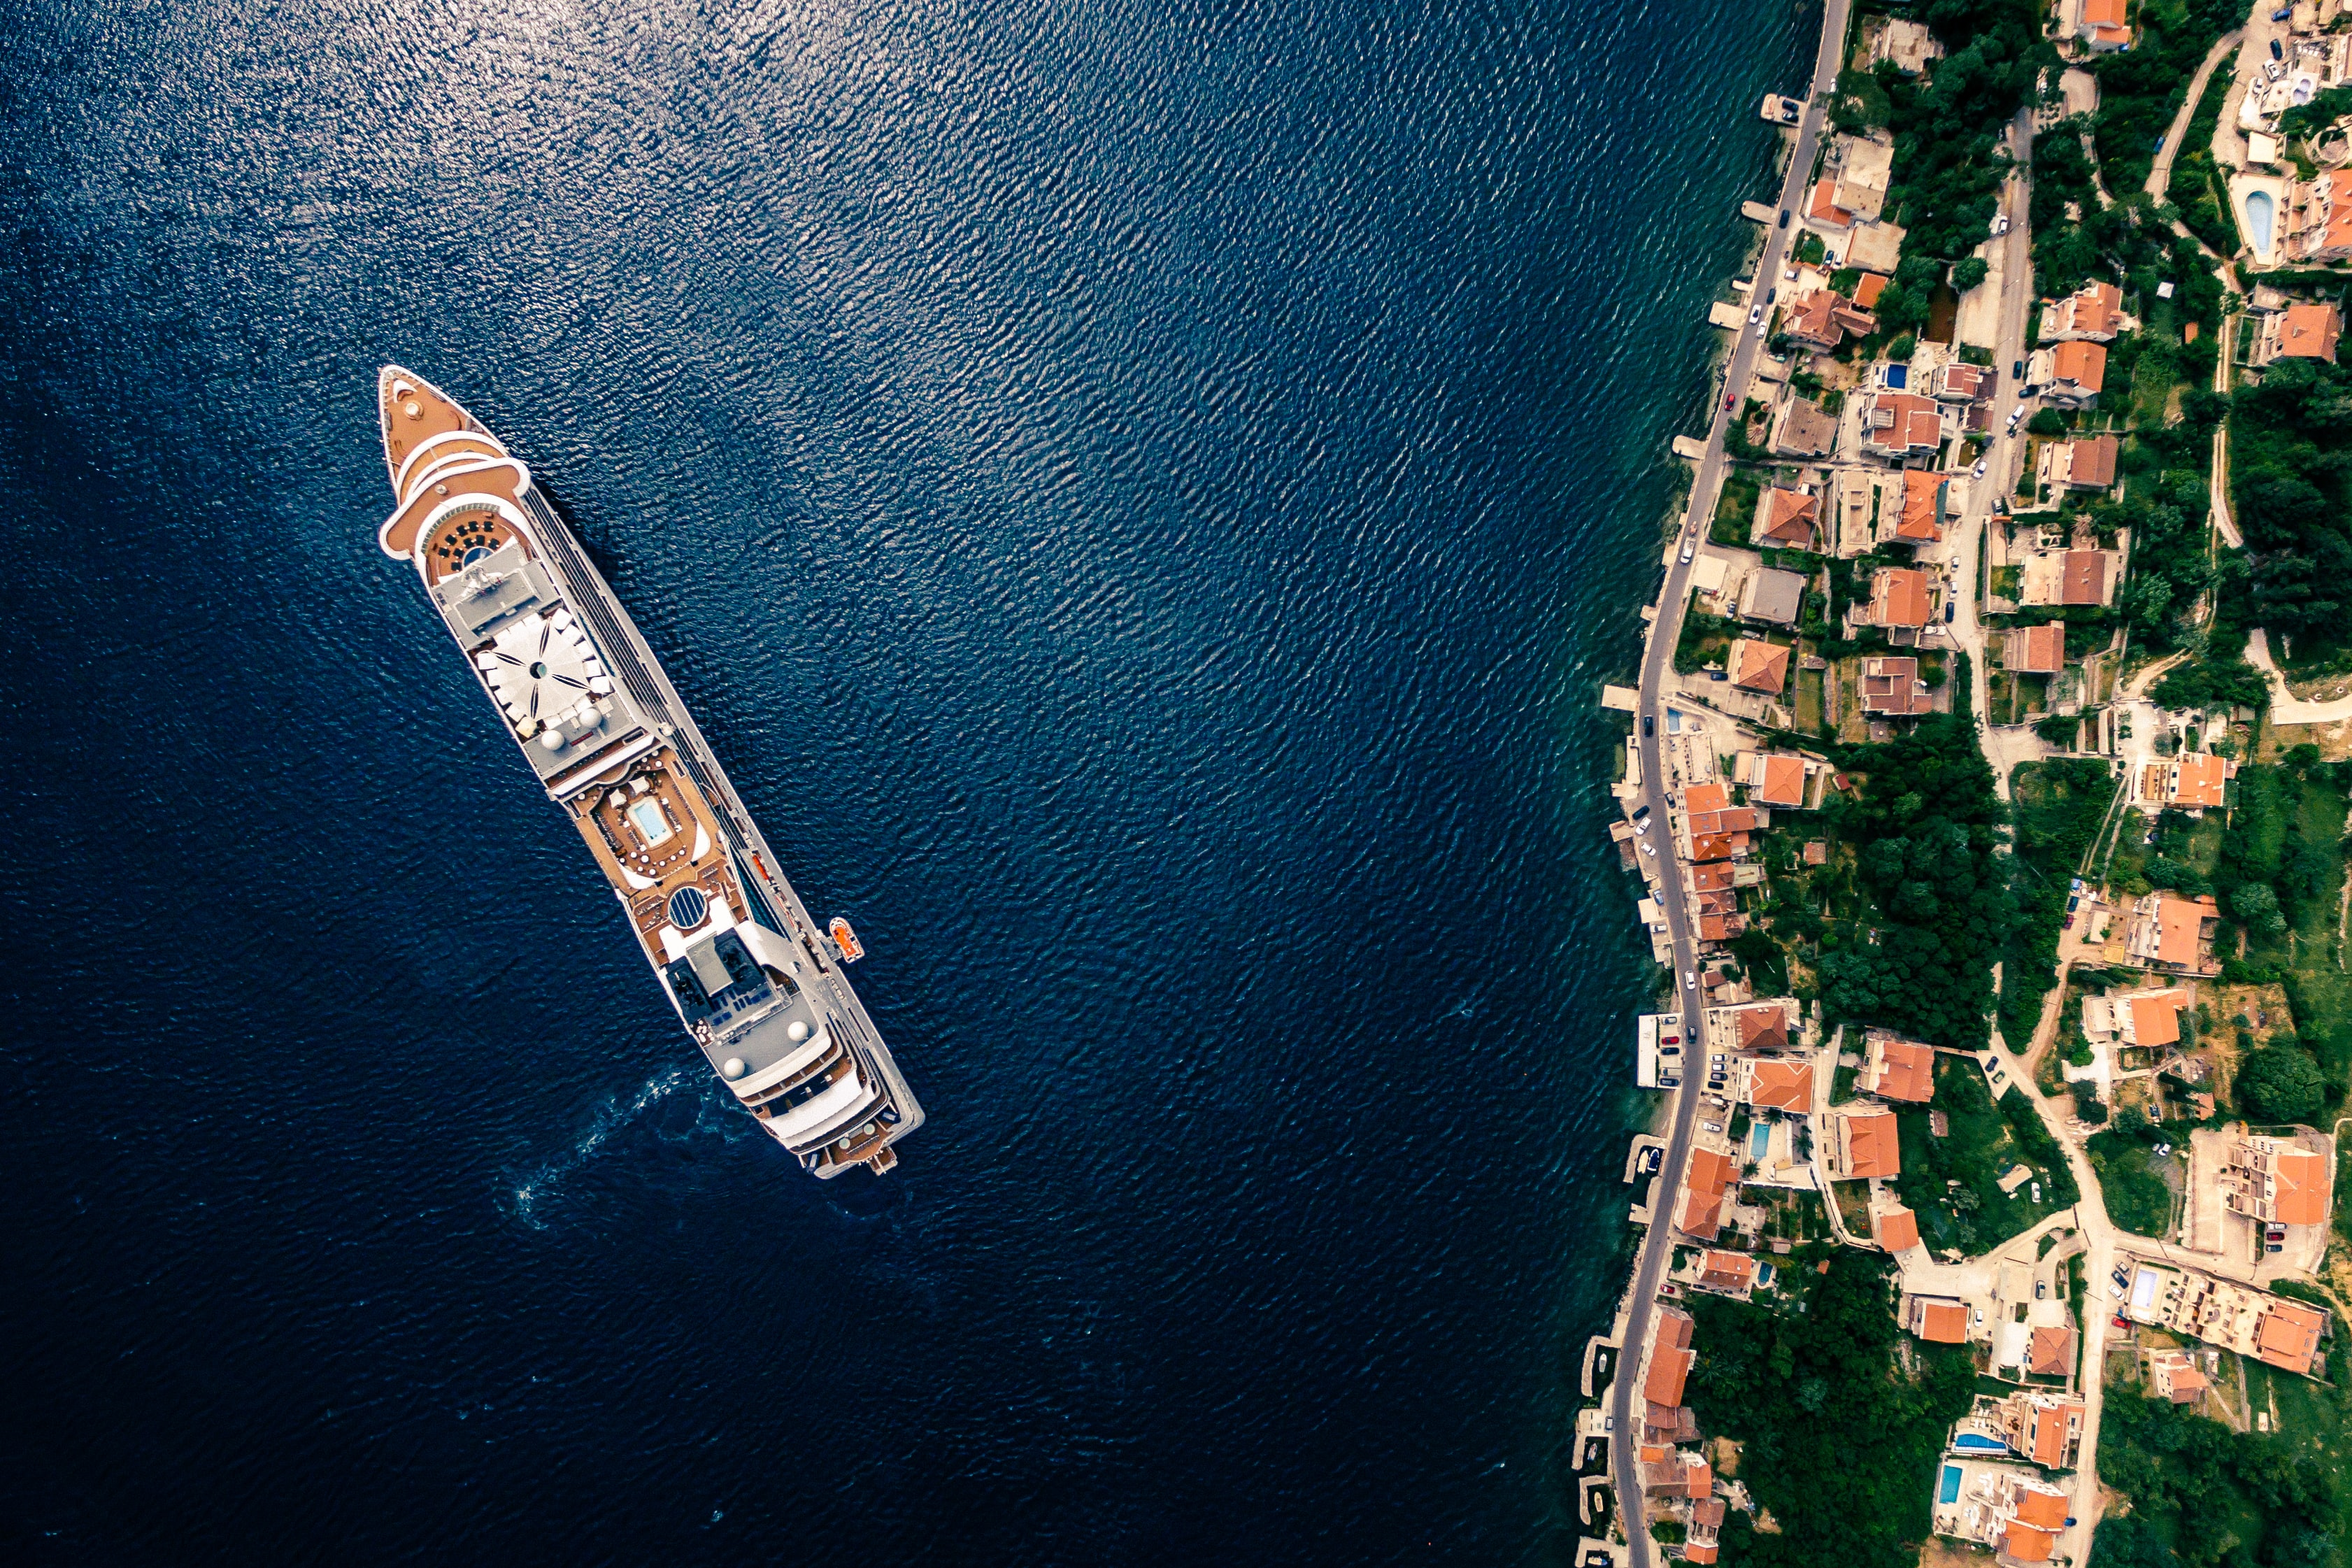 aerial photography of white and brown cruise ship on water